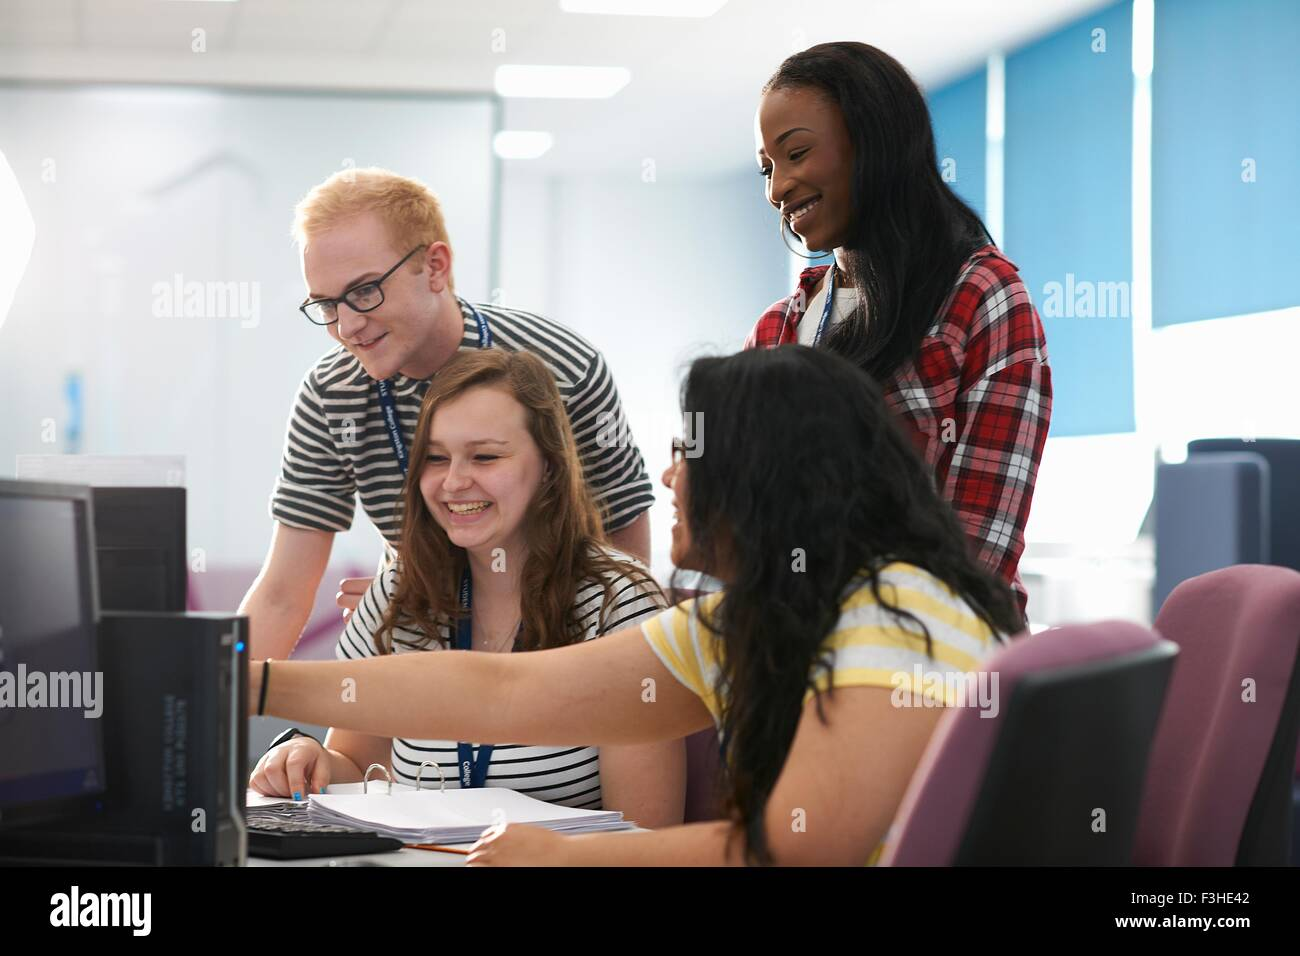 Teacher and students working together in computer class - Stock Image